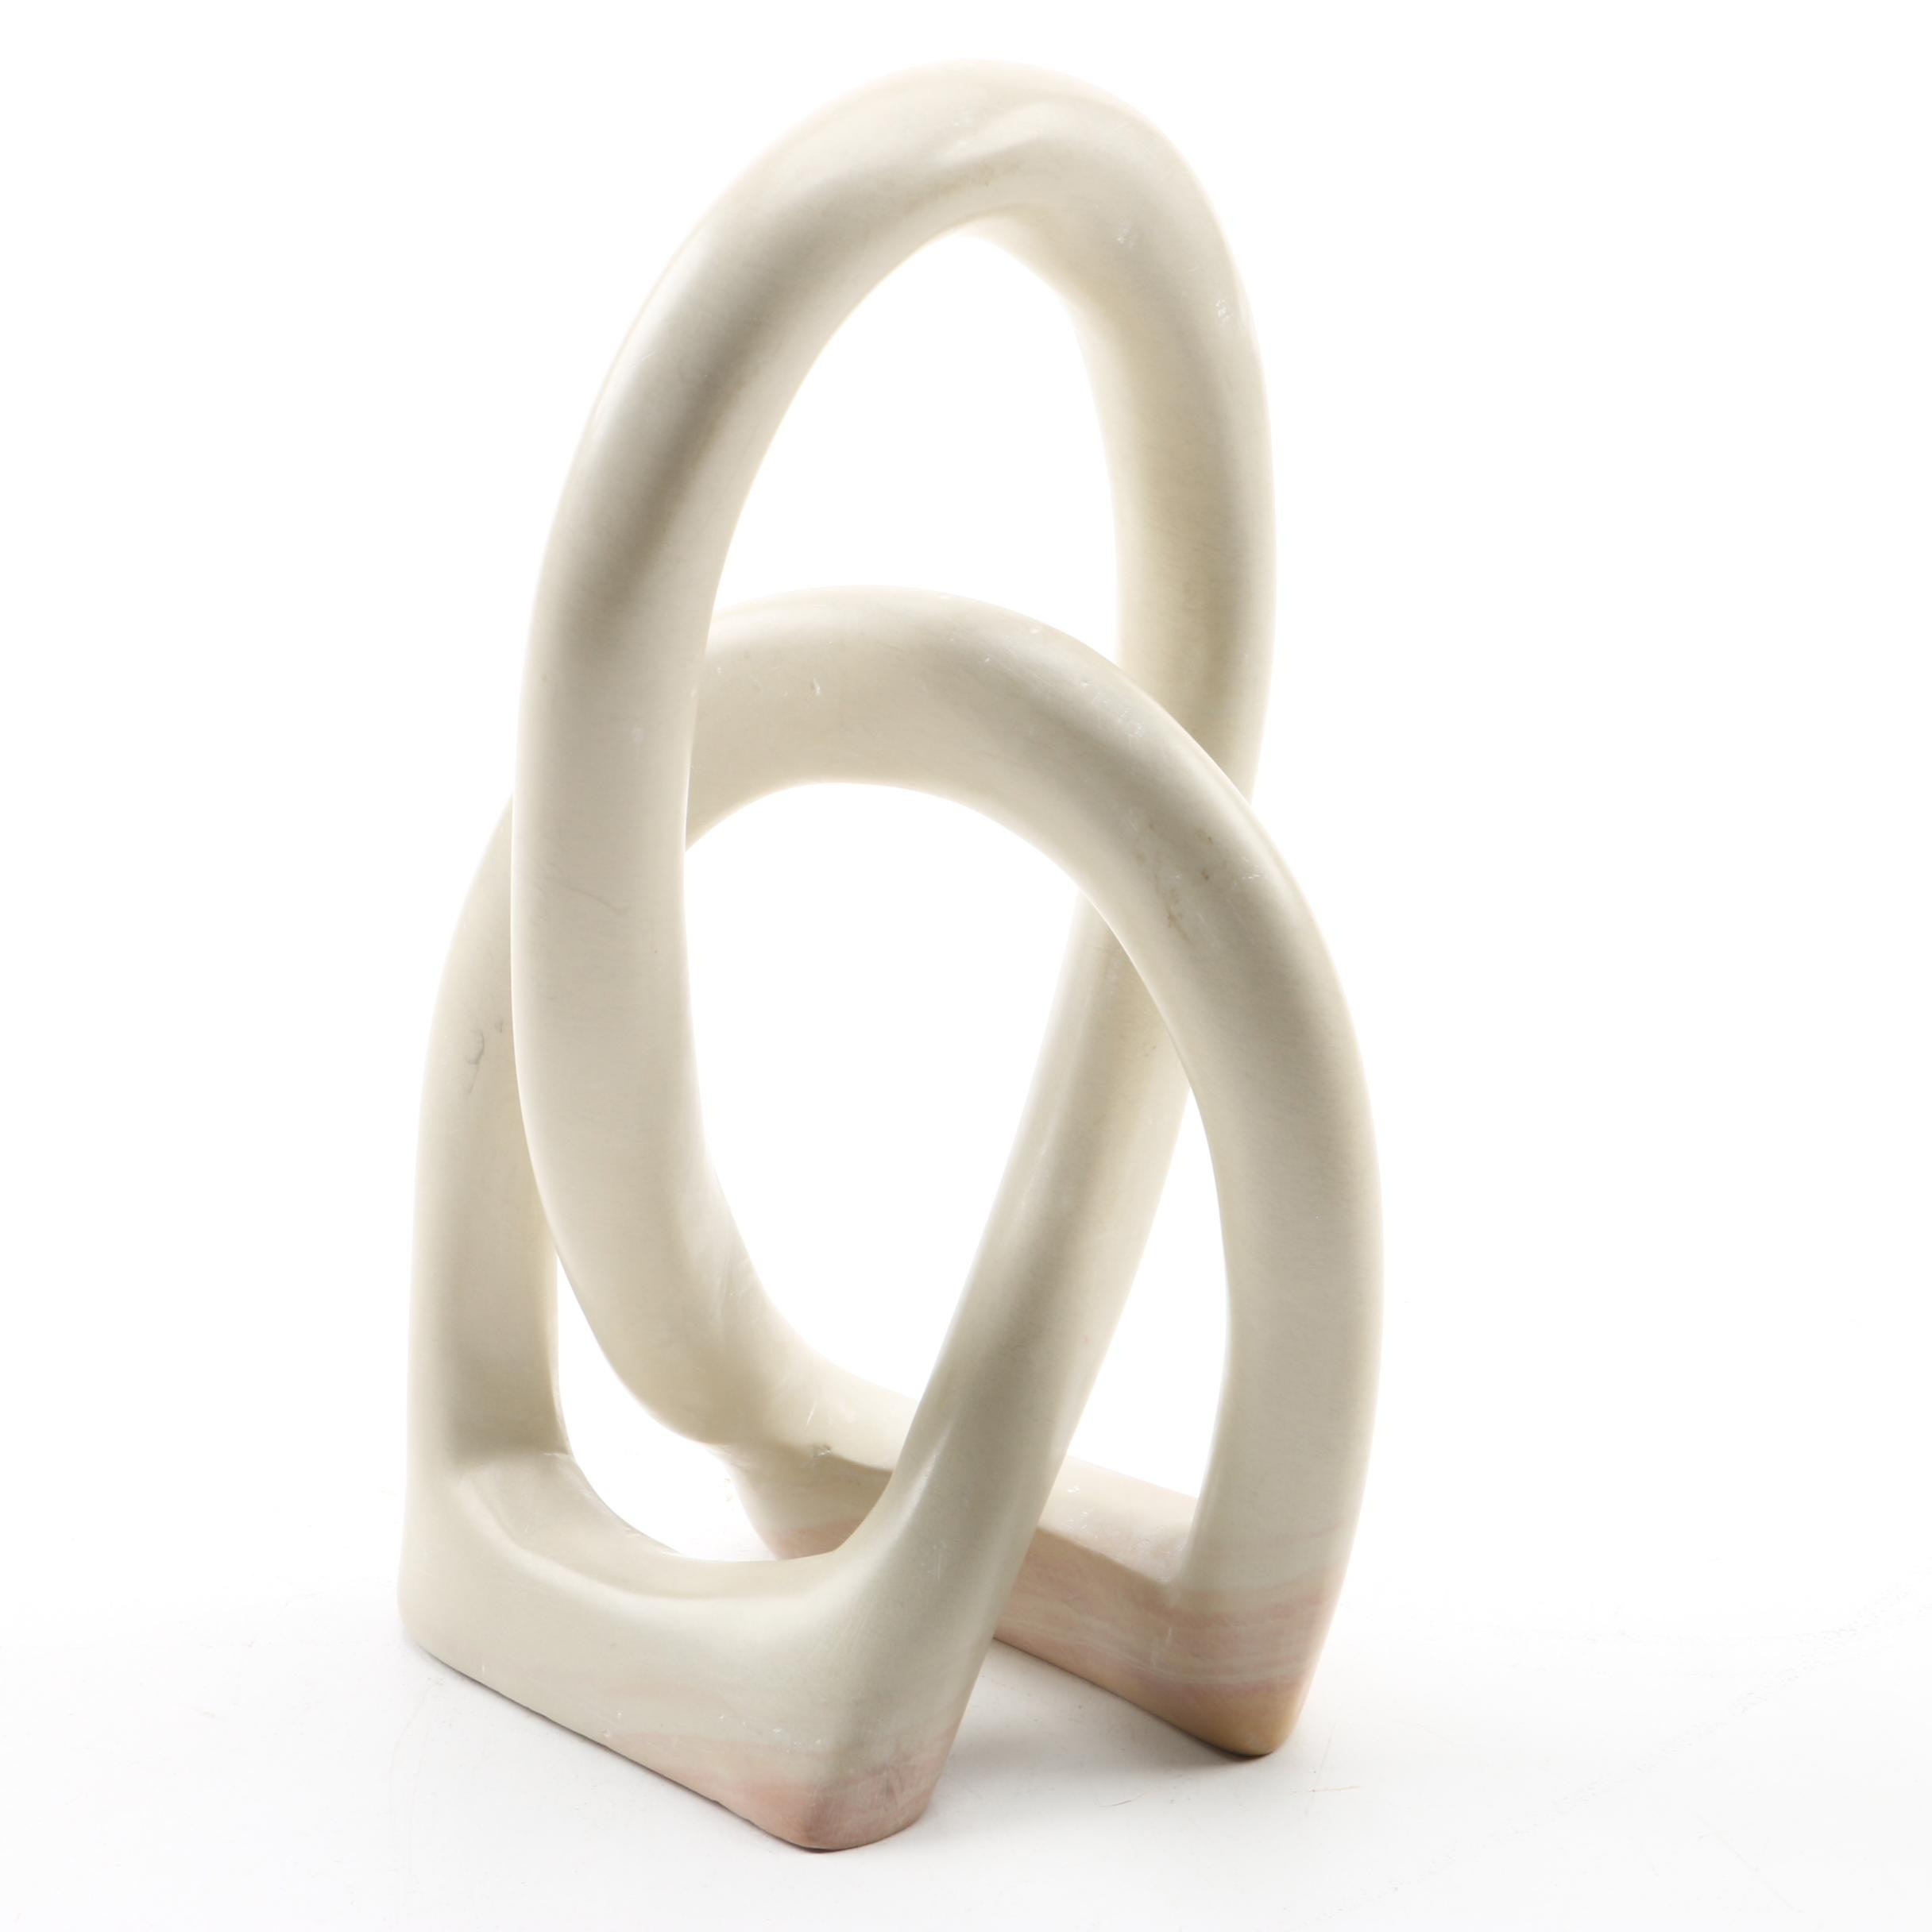 Soapstone Sculpture of a Trefoil Knot